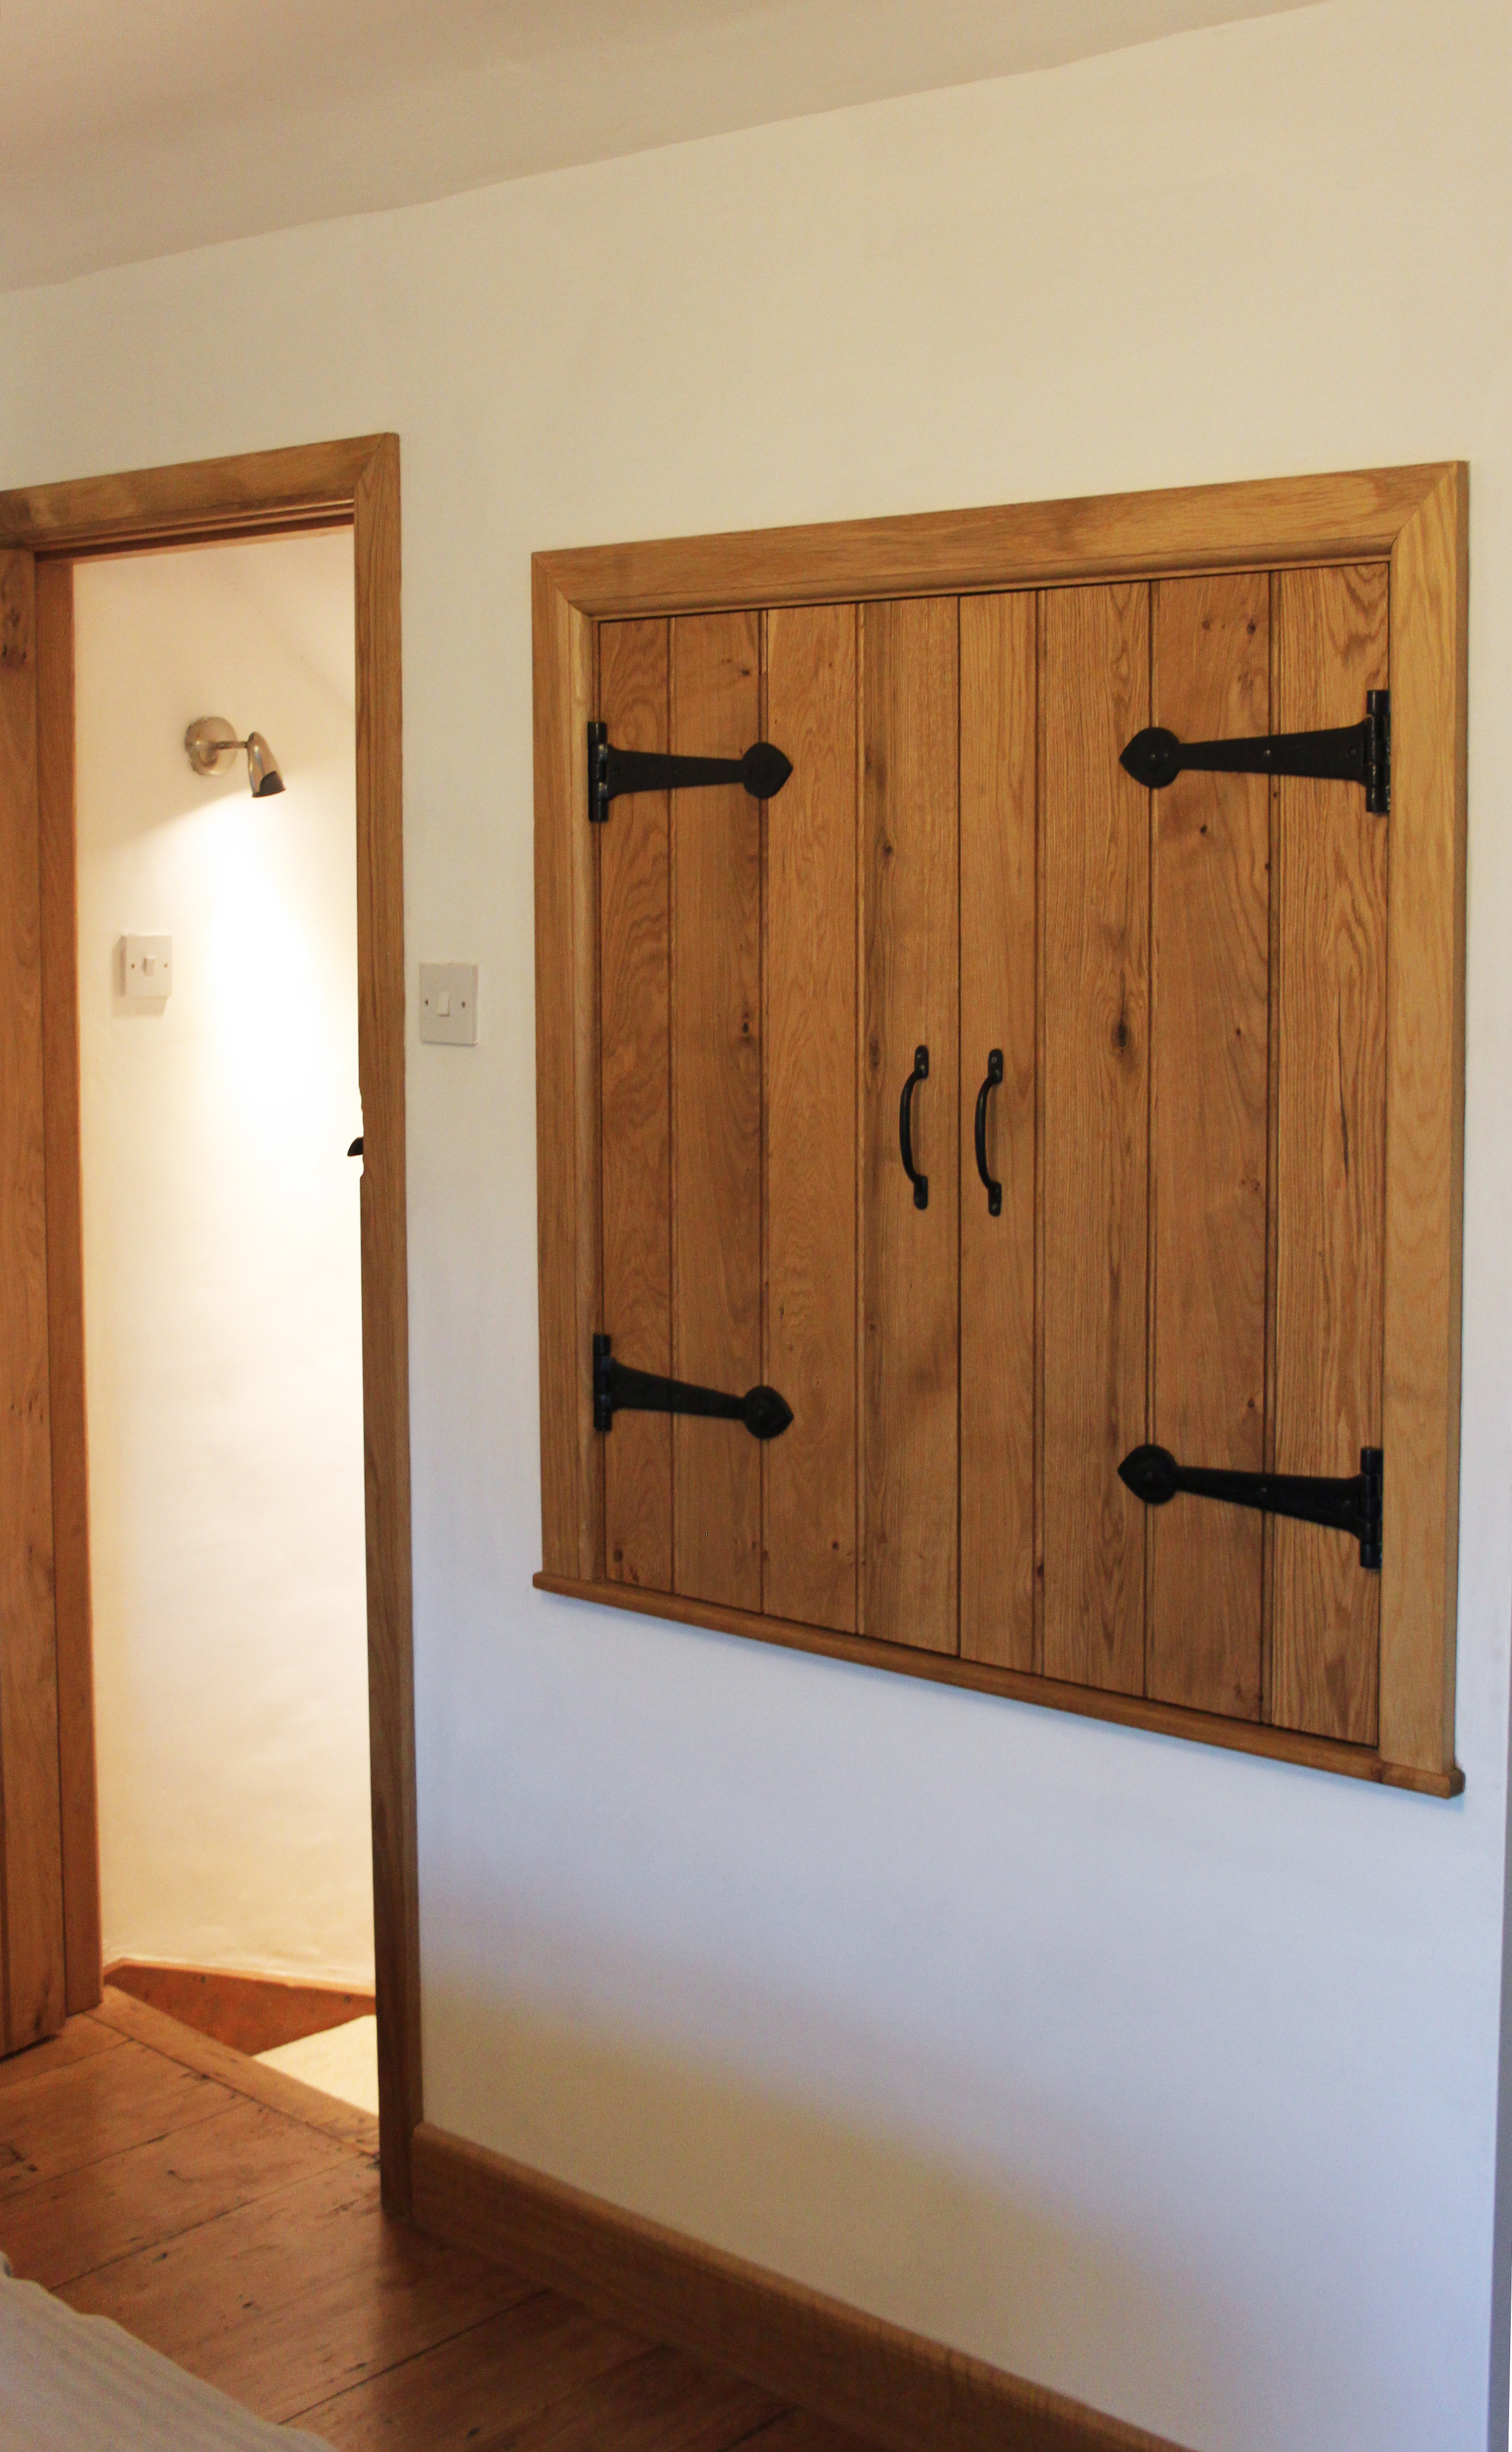 A beautiful period property in North Wales had custom made brace and ledge solid oak cupboard